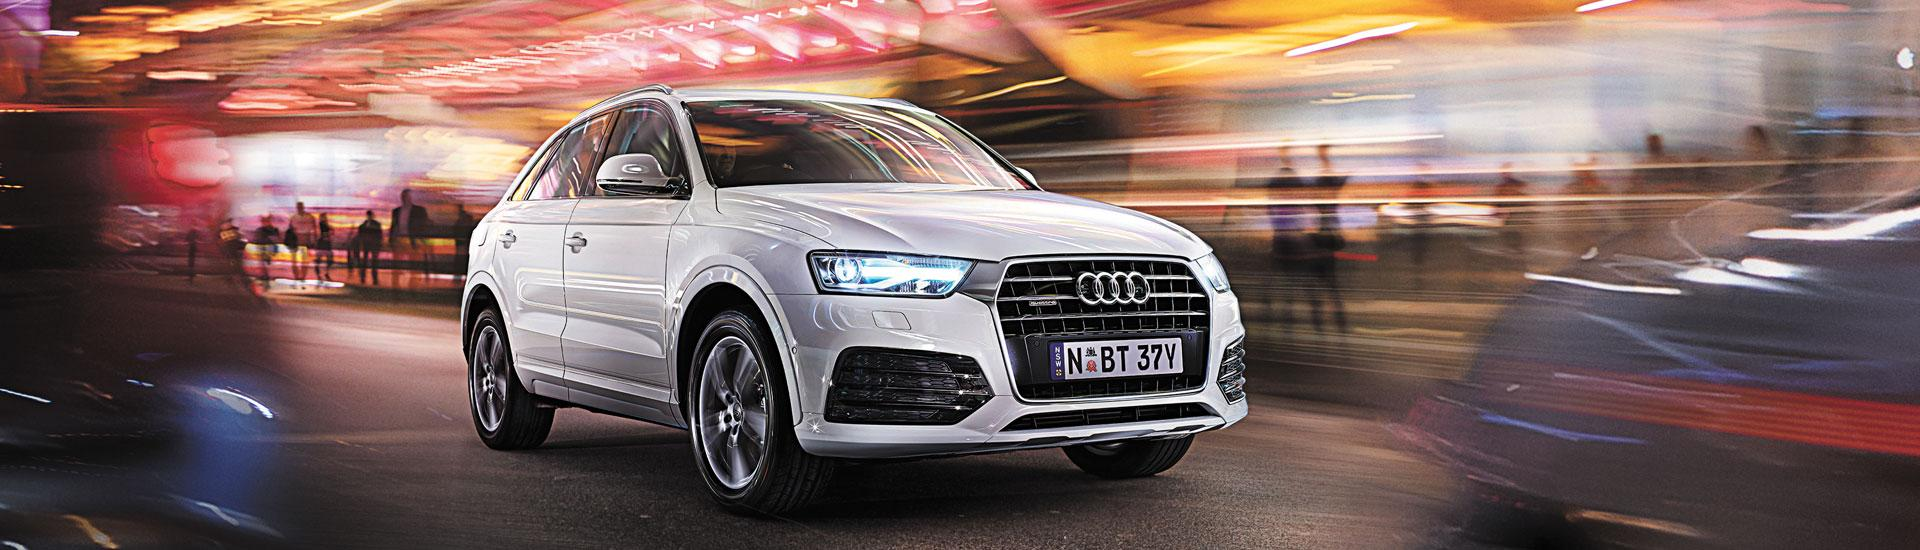 SUV - Find New SUV Cars For Sale - carsales.com.au